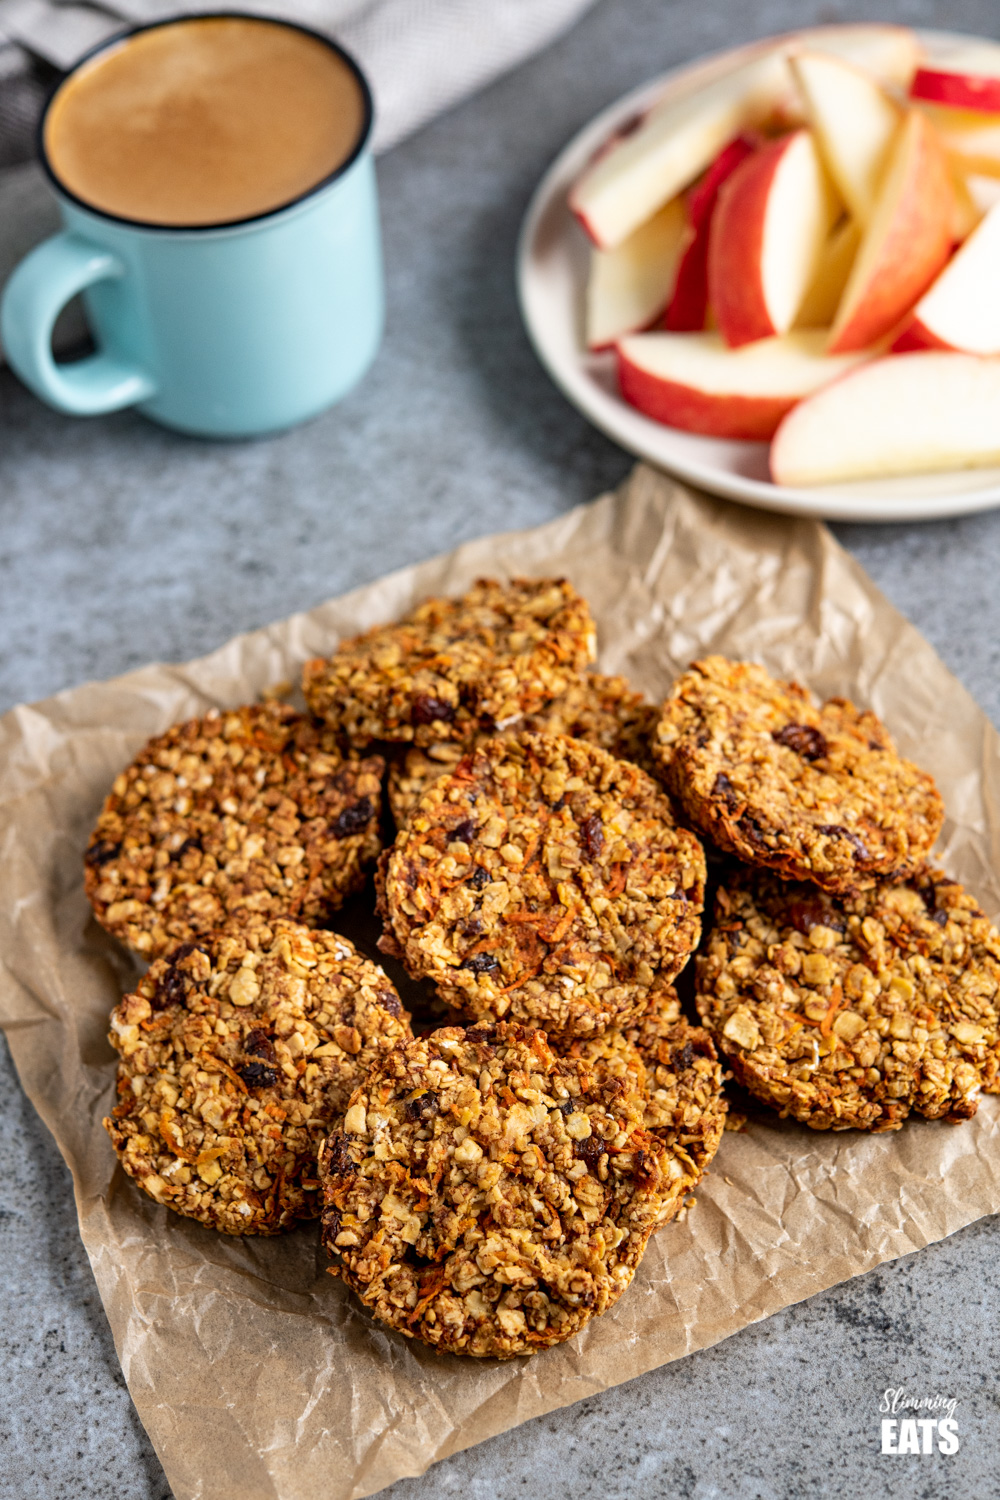 carrot cake flapjack cookies on parchment paper with mug of espresso coffee and sliced apple on white plate.